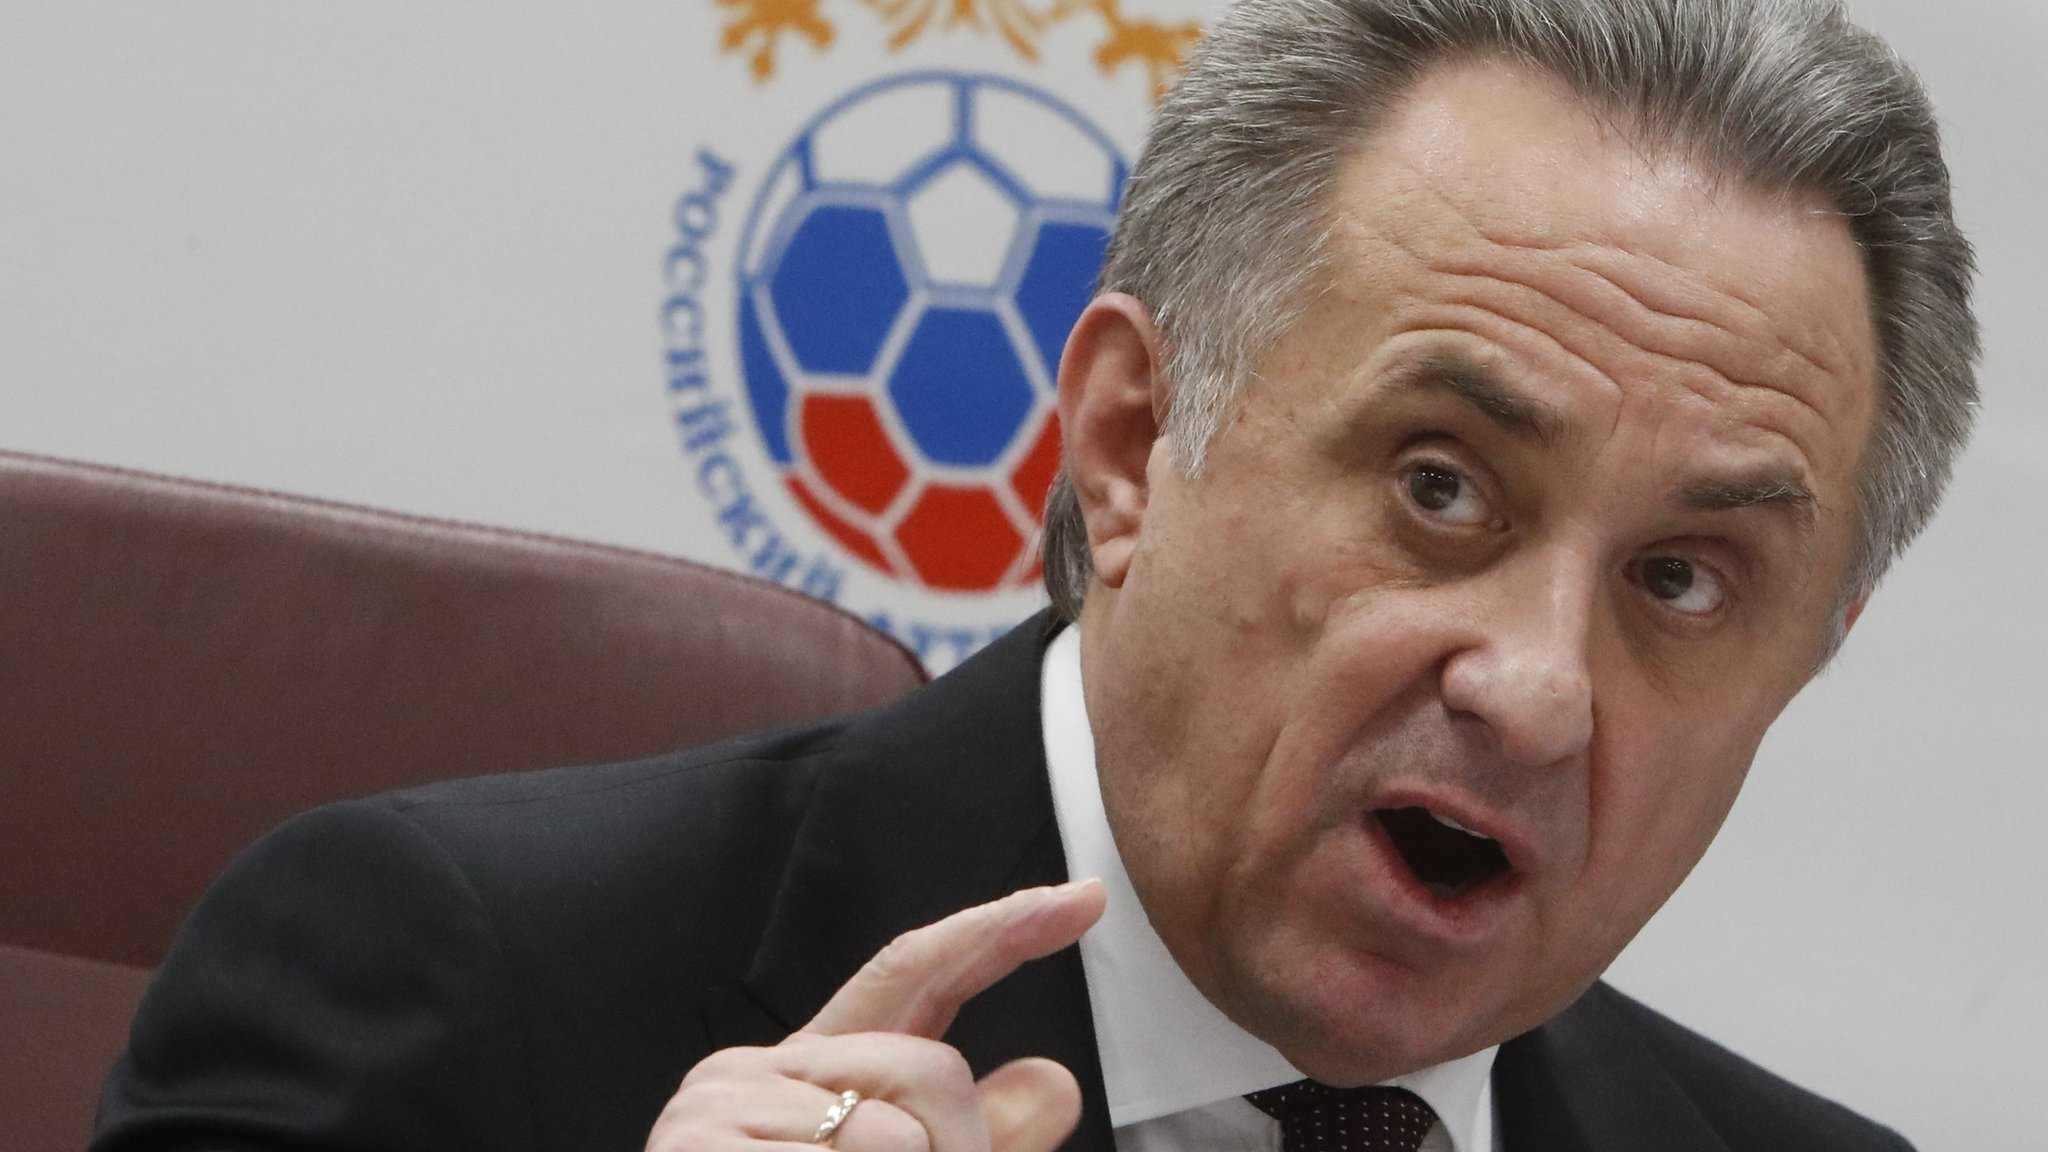 Russia's Mutko leaves World Cup organising role